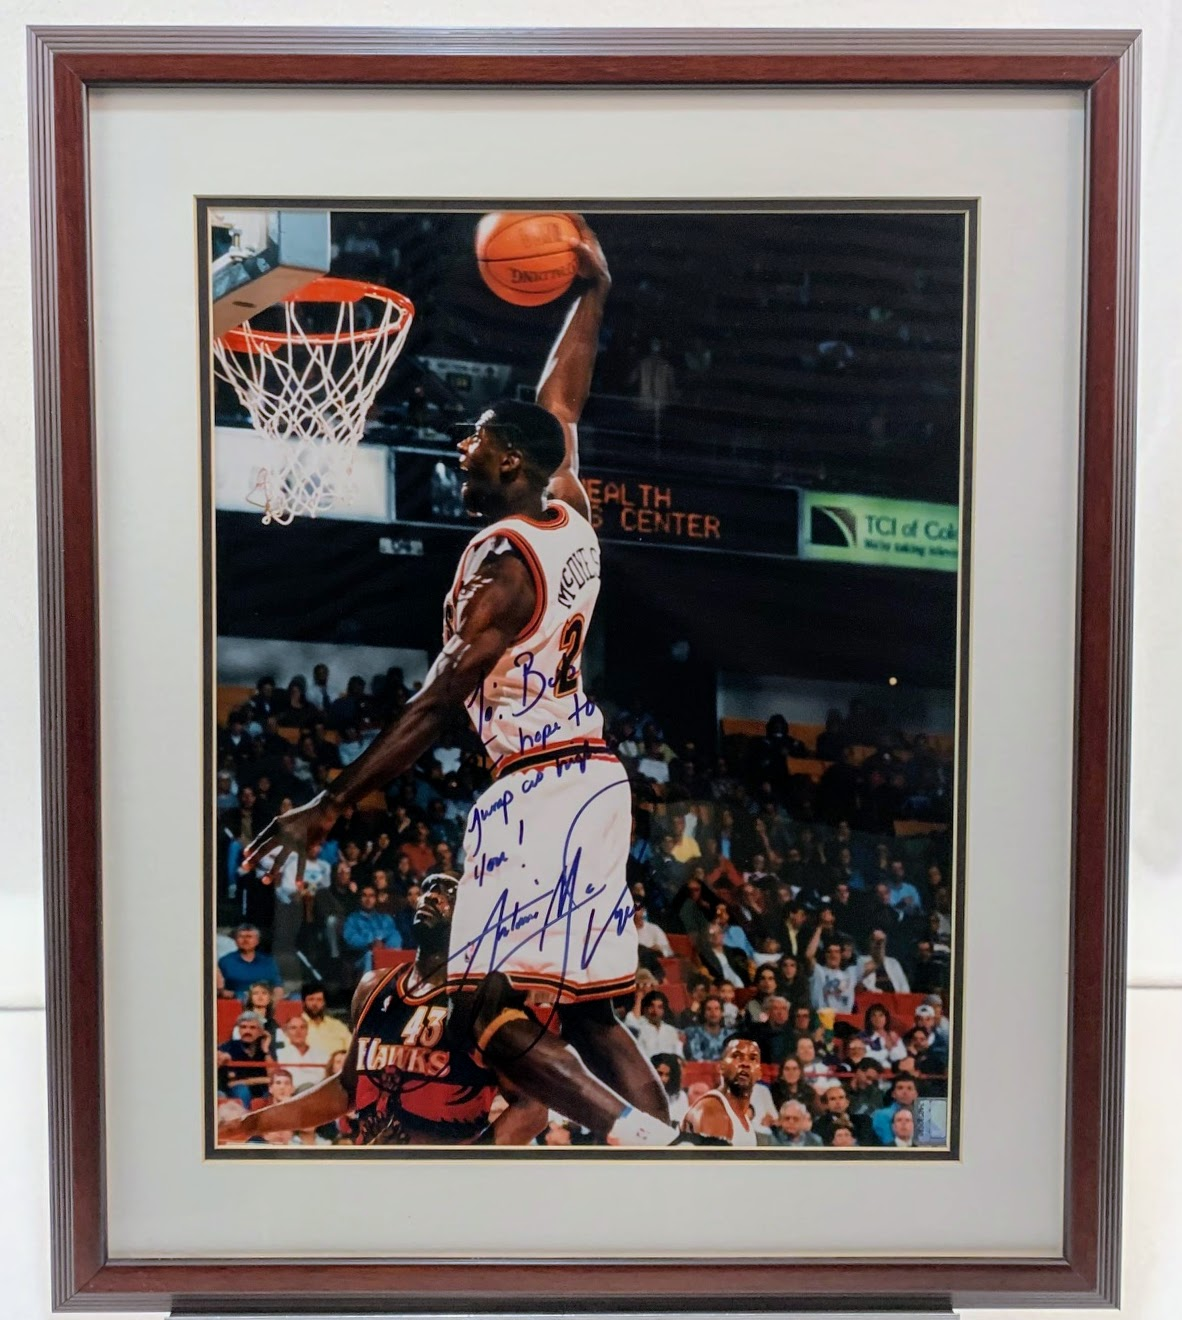 "Antonio McDyess Signed 16x20 Framed Photo with Inscription ""To Bob..."" LSM COA"